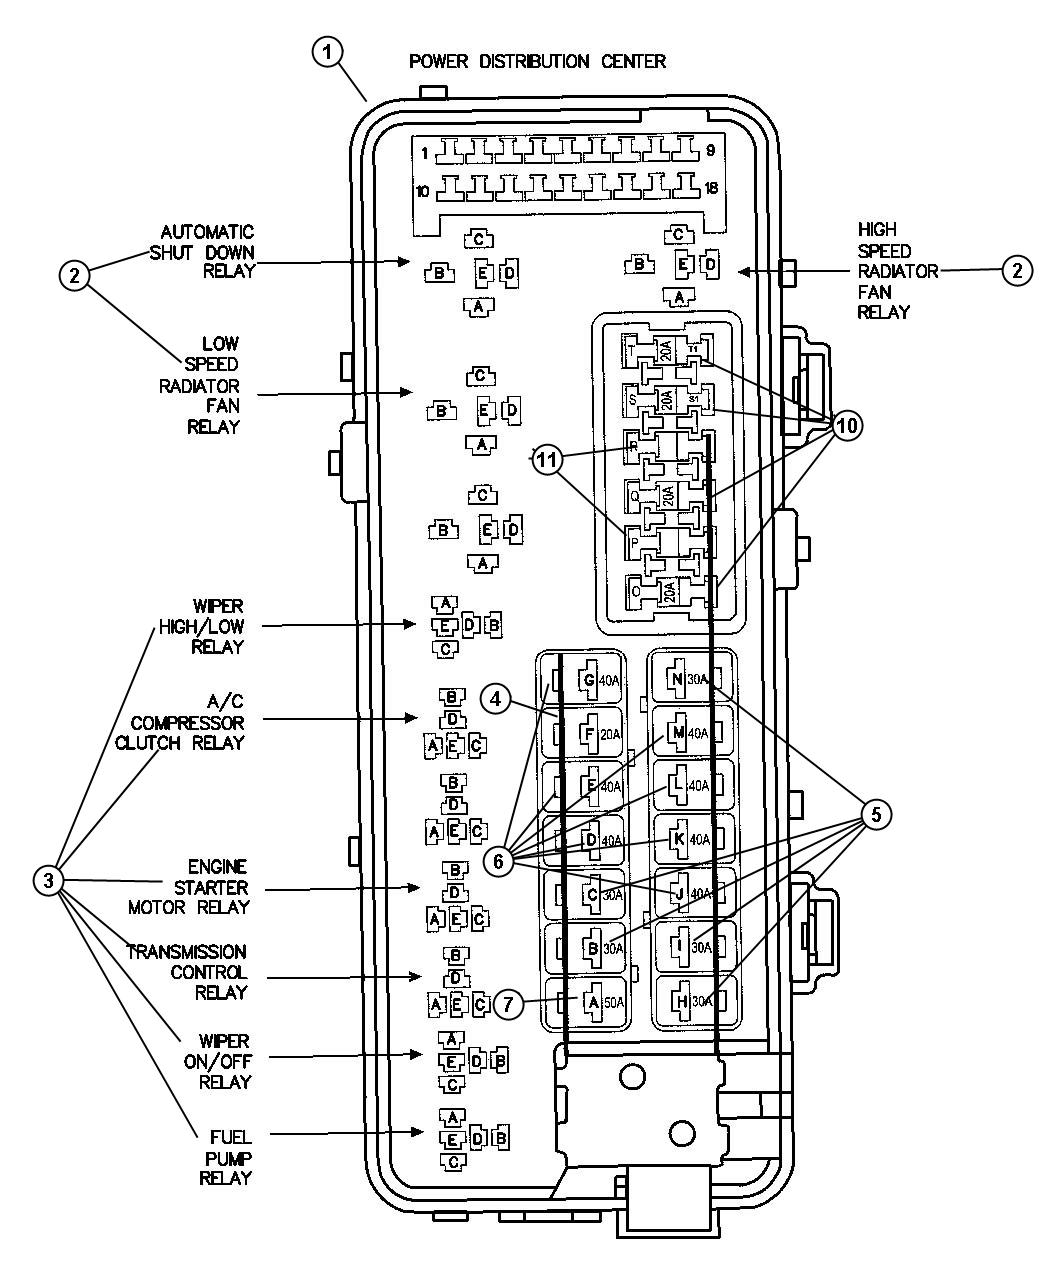 Fuse Box For Chrysler Concorde